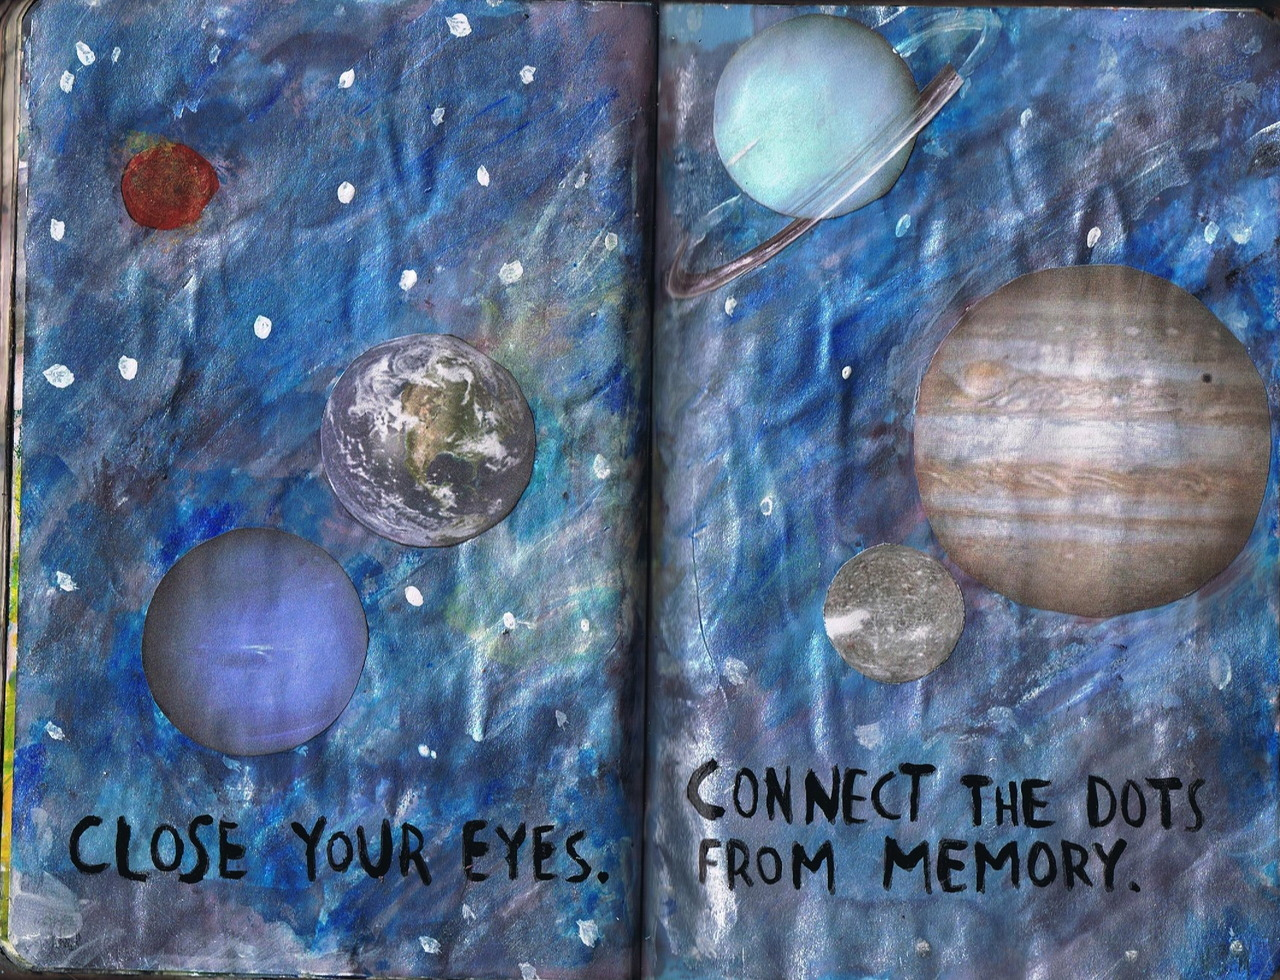 Close your eyes. Connect the dots from memory.